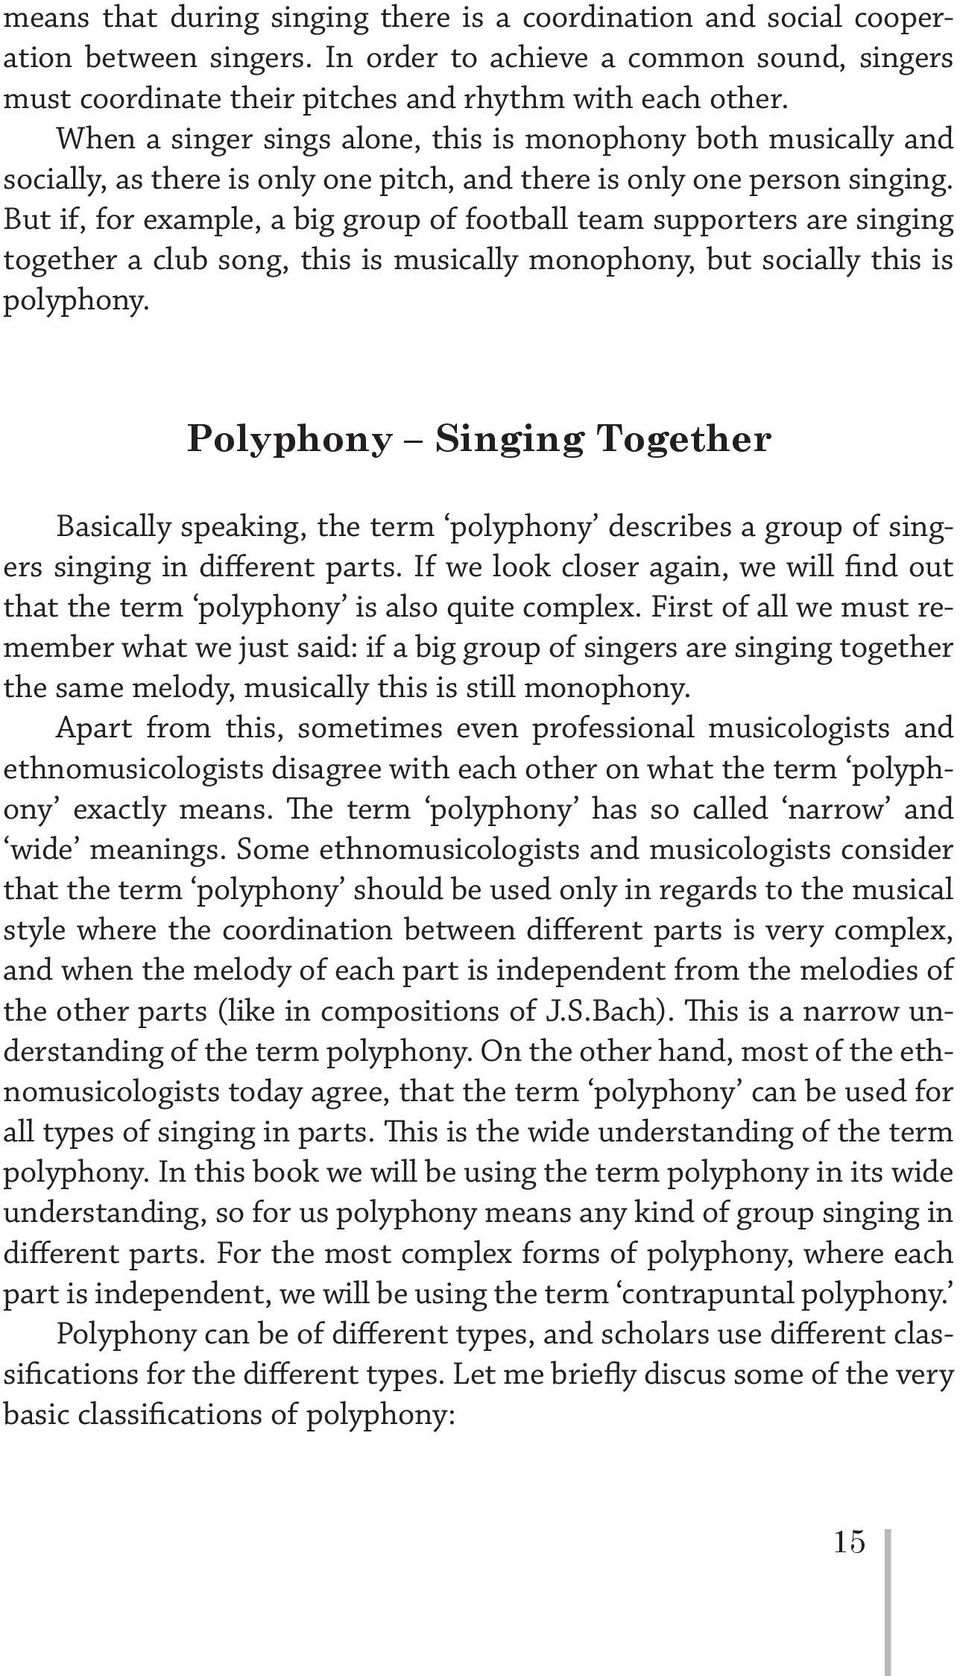 But if, for example, a big group of football team supporters are singing together a club song, this is musically monophony, but socially this is polyphony.